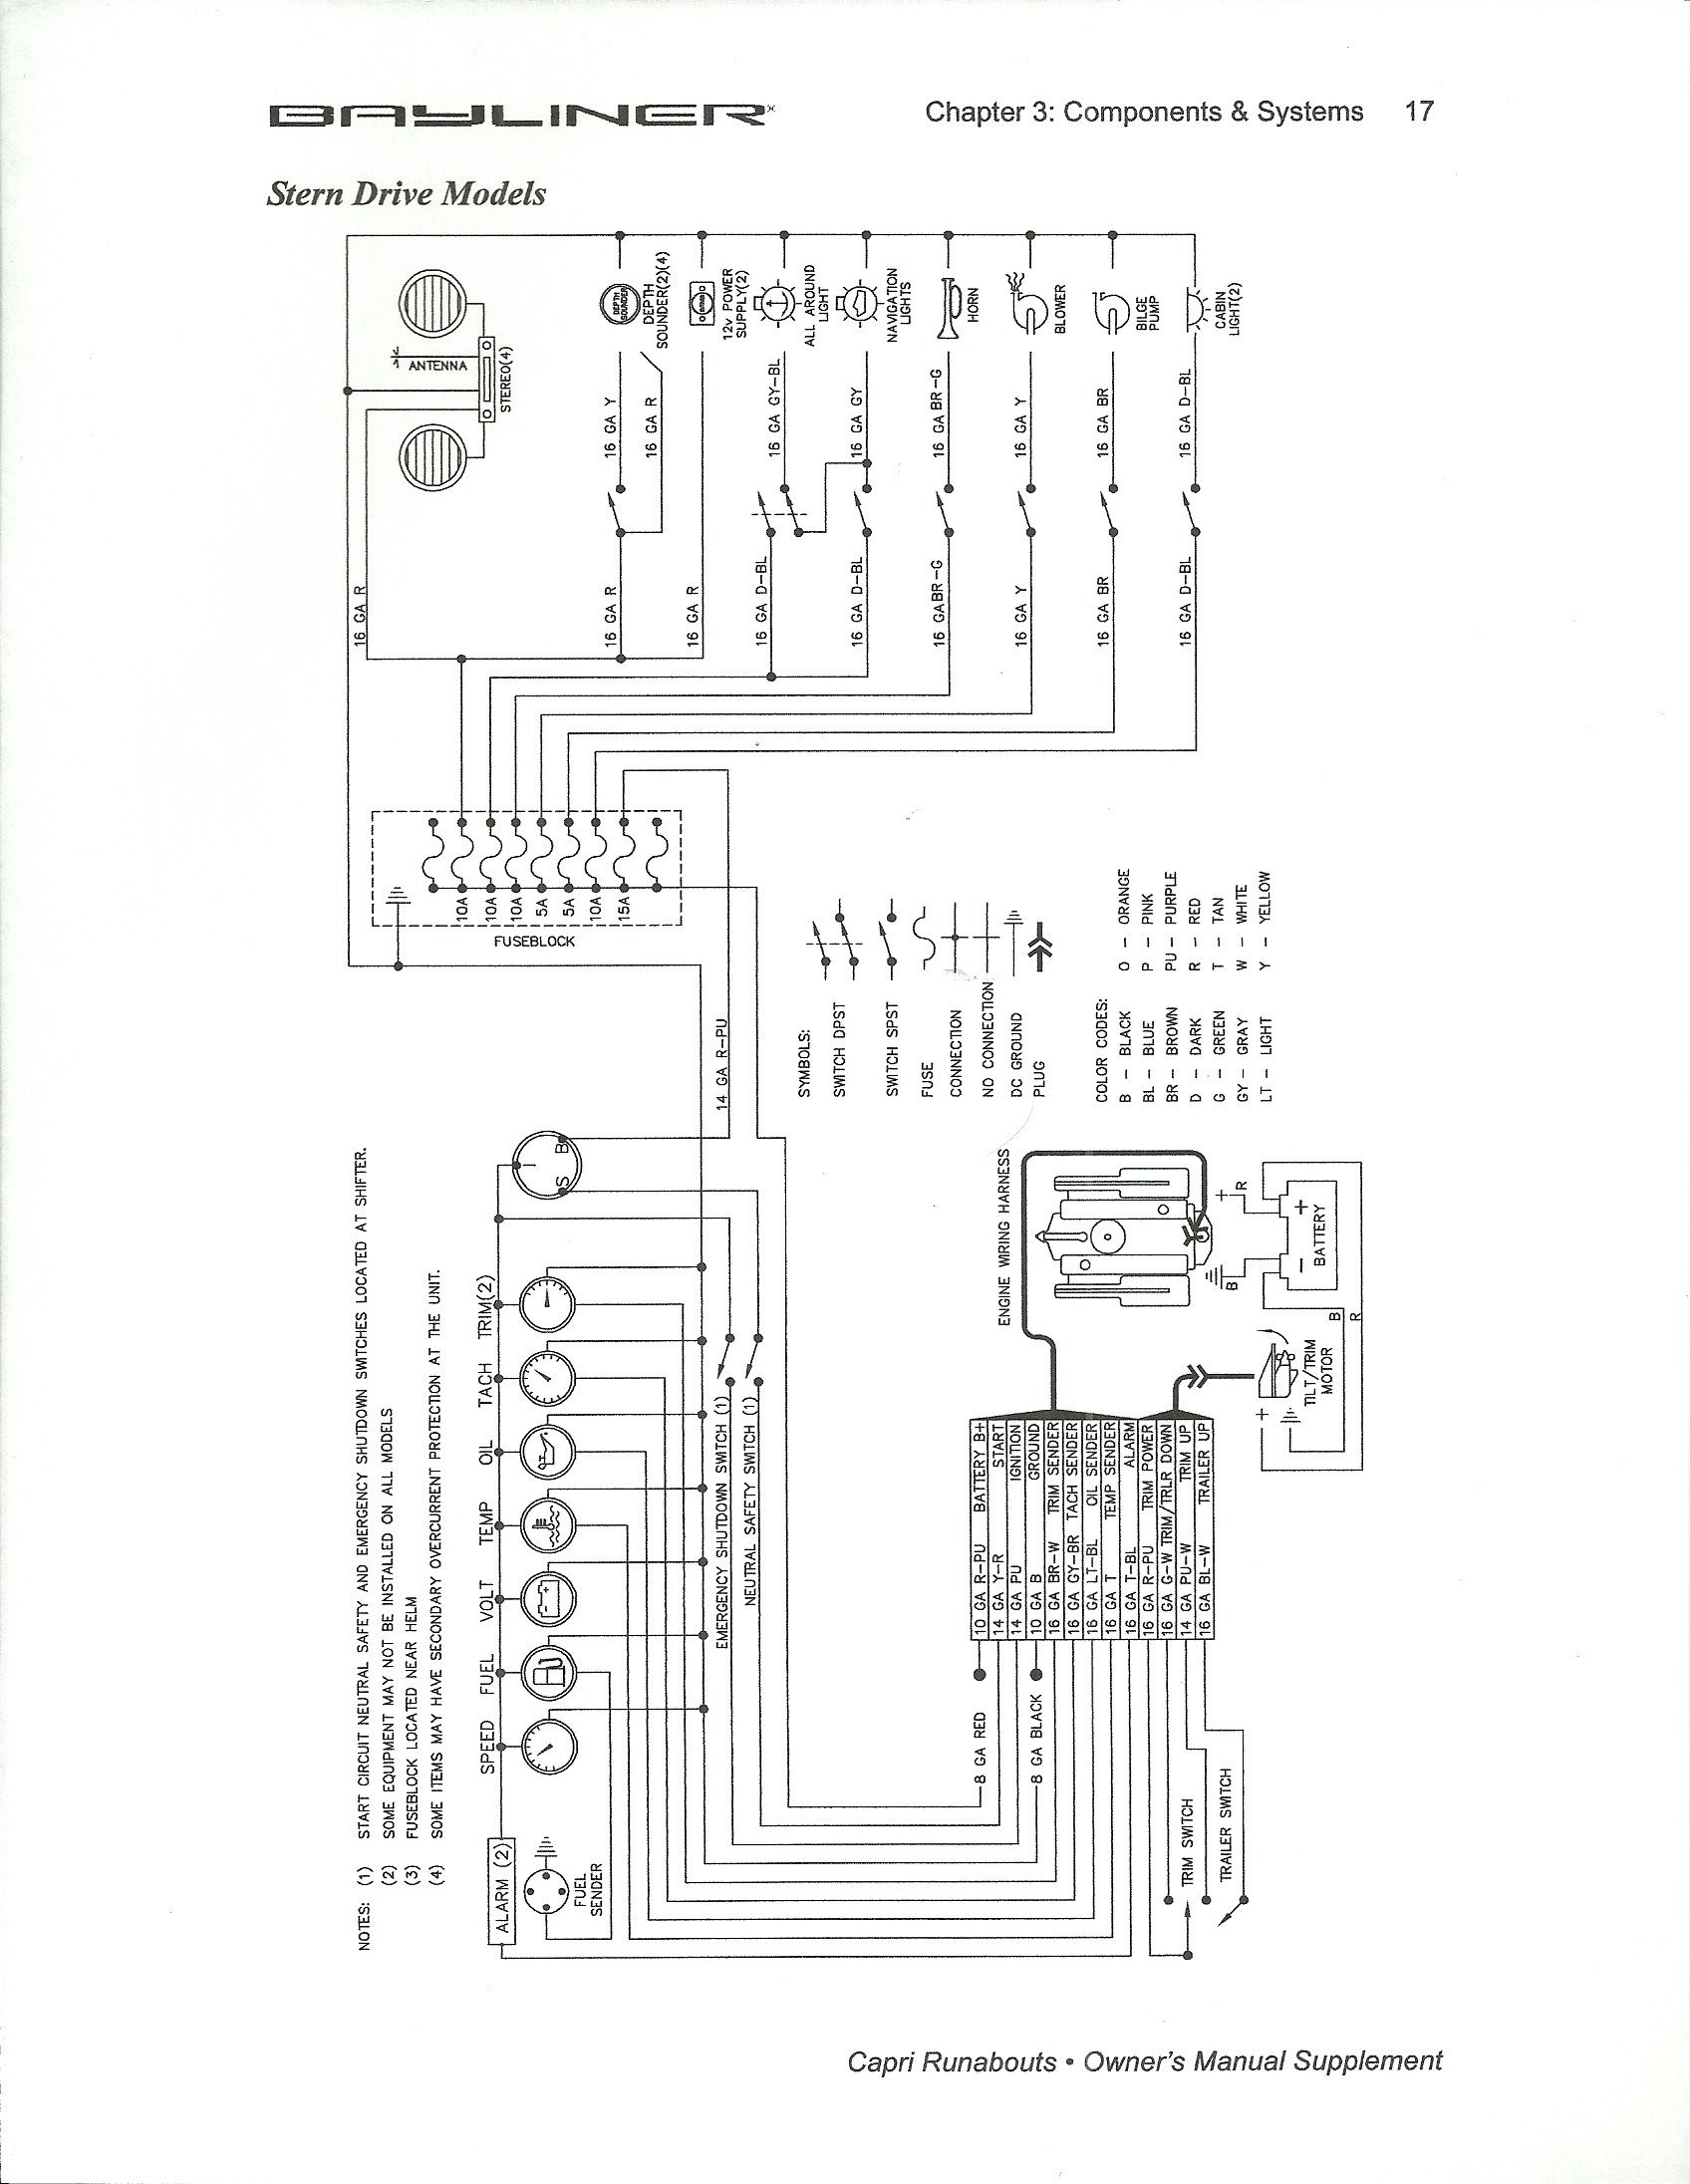 1984 Bayliner Starter Motor Wiring Diagram from static-resources.imageservice.cloud